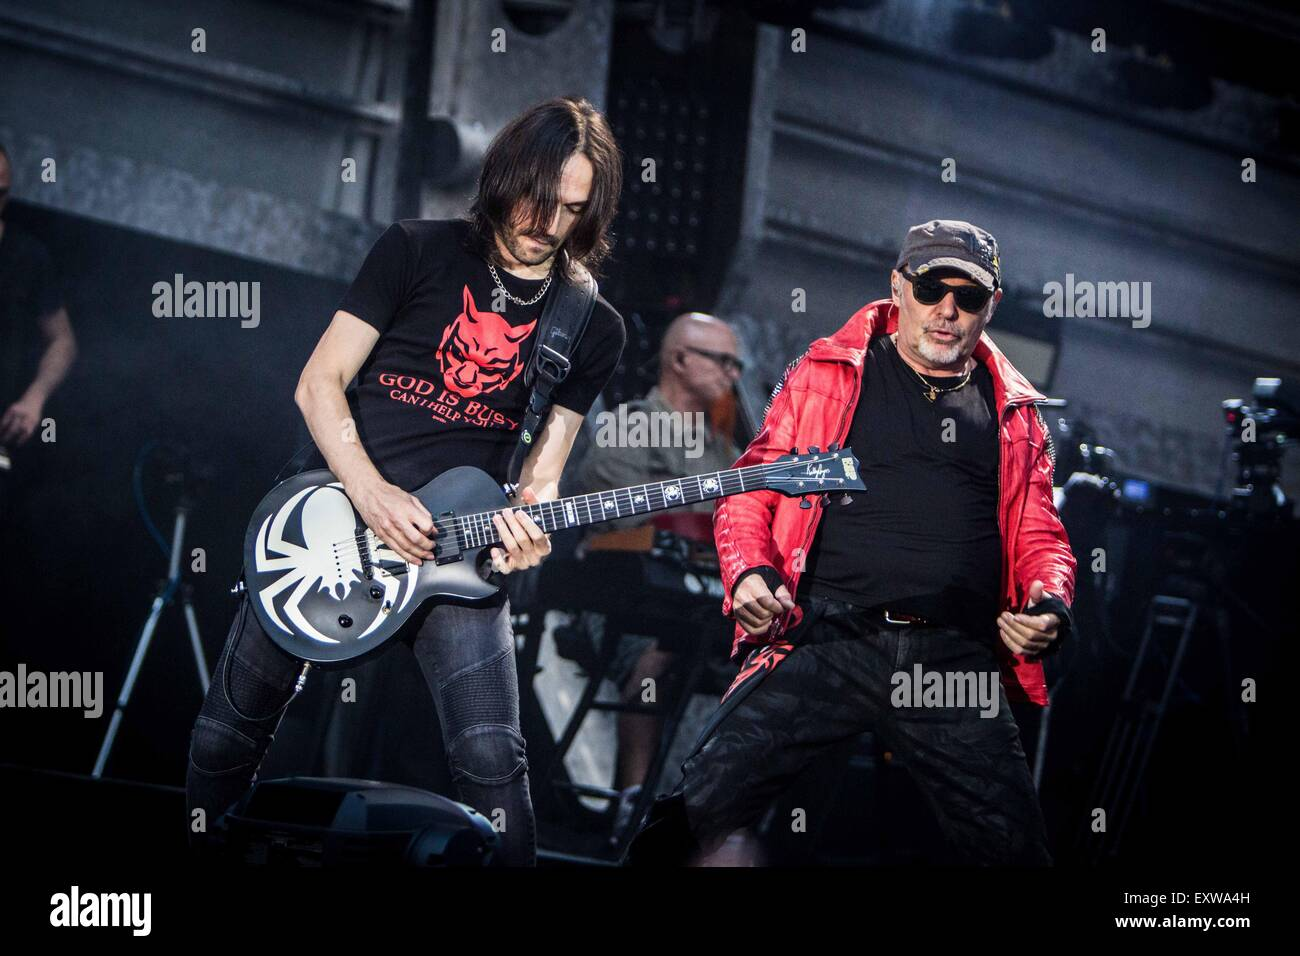 Bus Concerto Vasco Vasco Rossi Performs Live In Milan Roberto Finizio Alamy Live